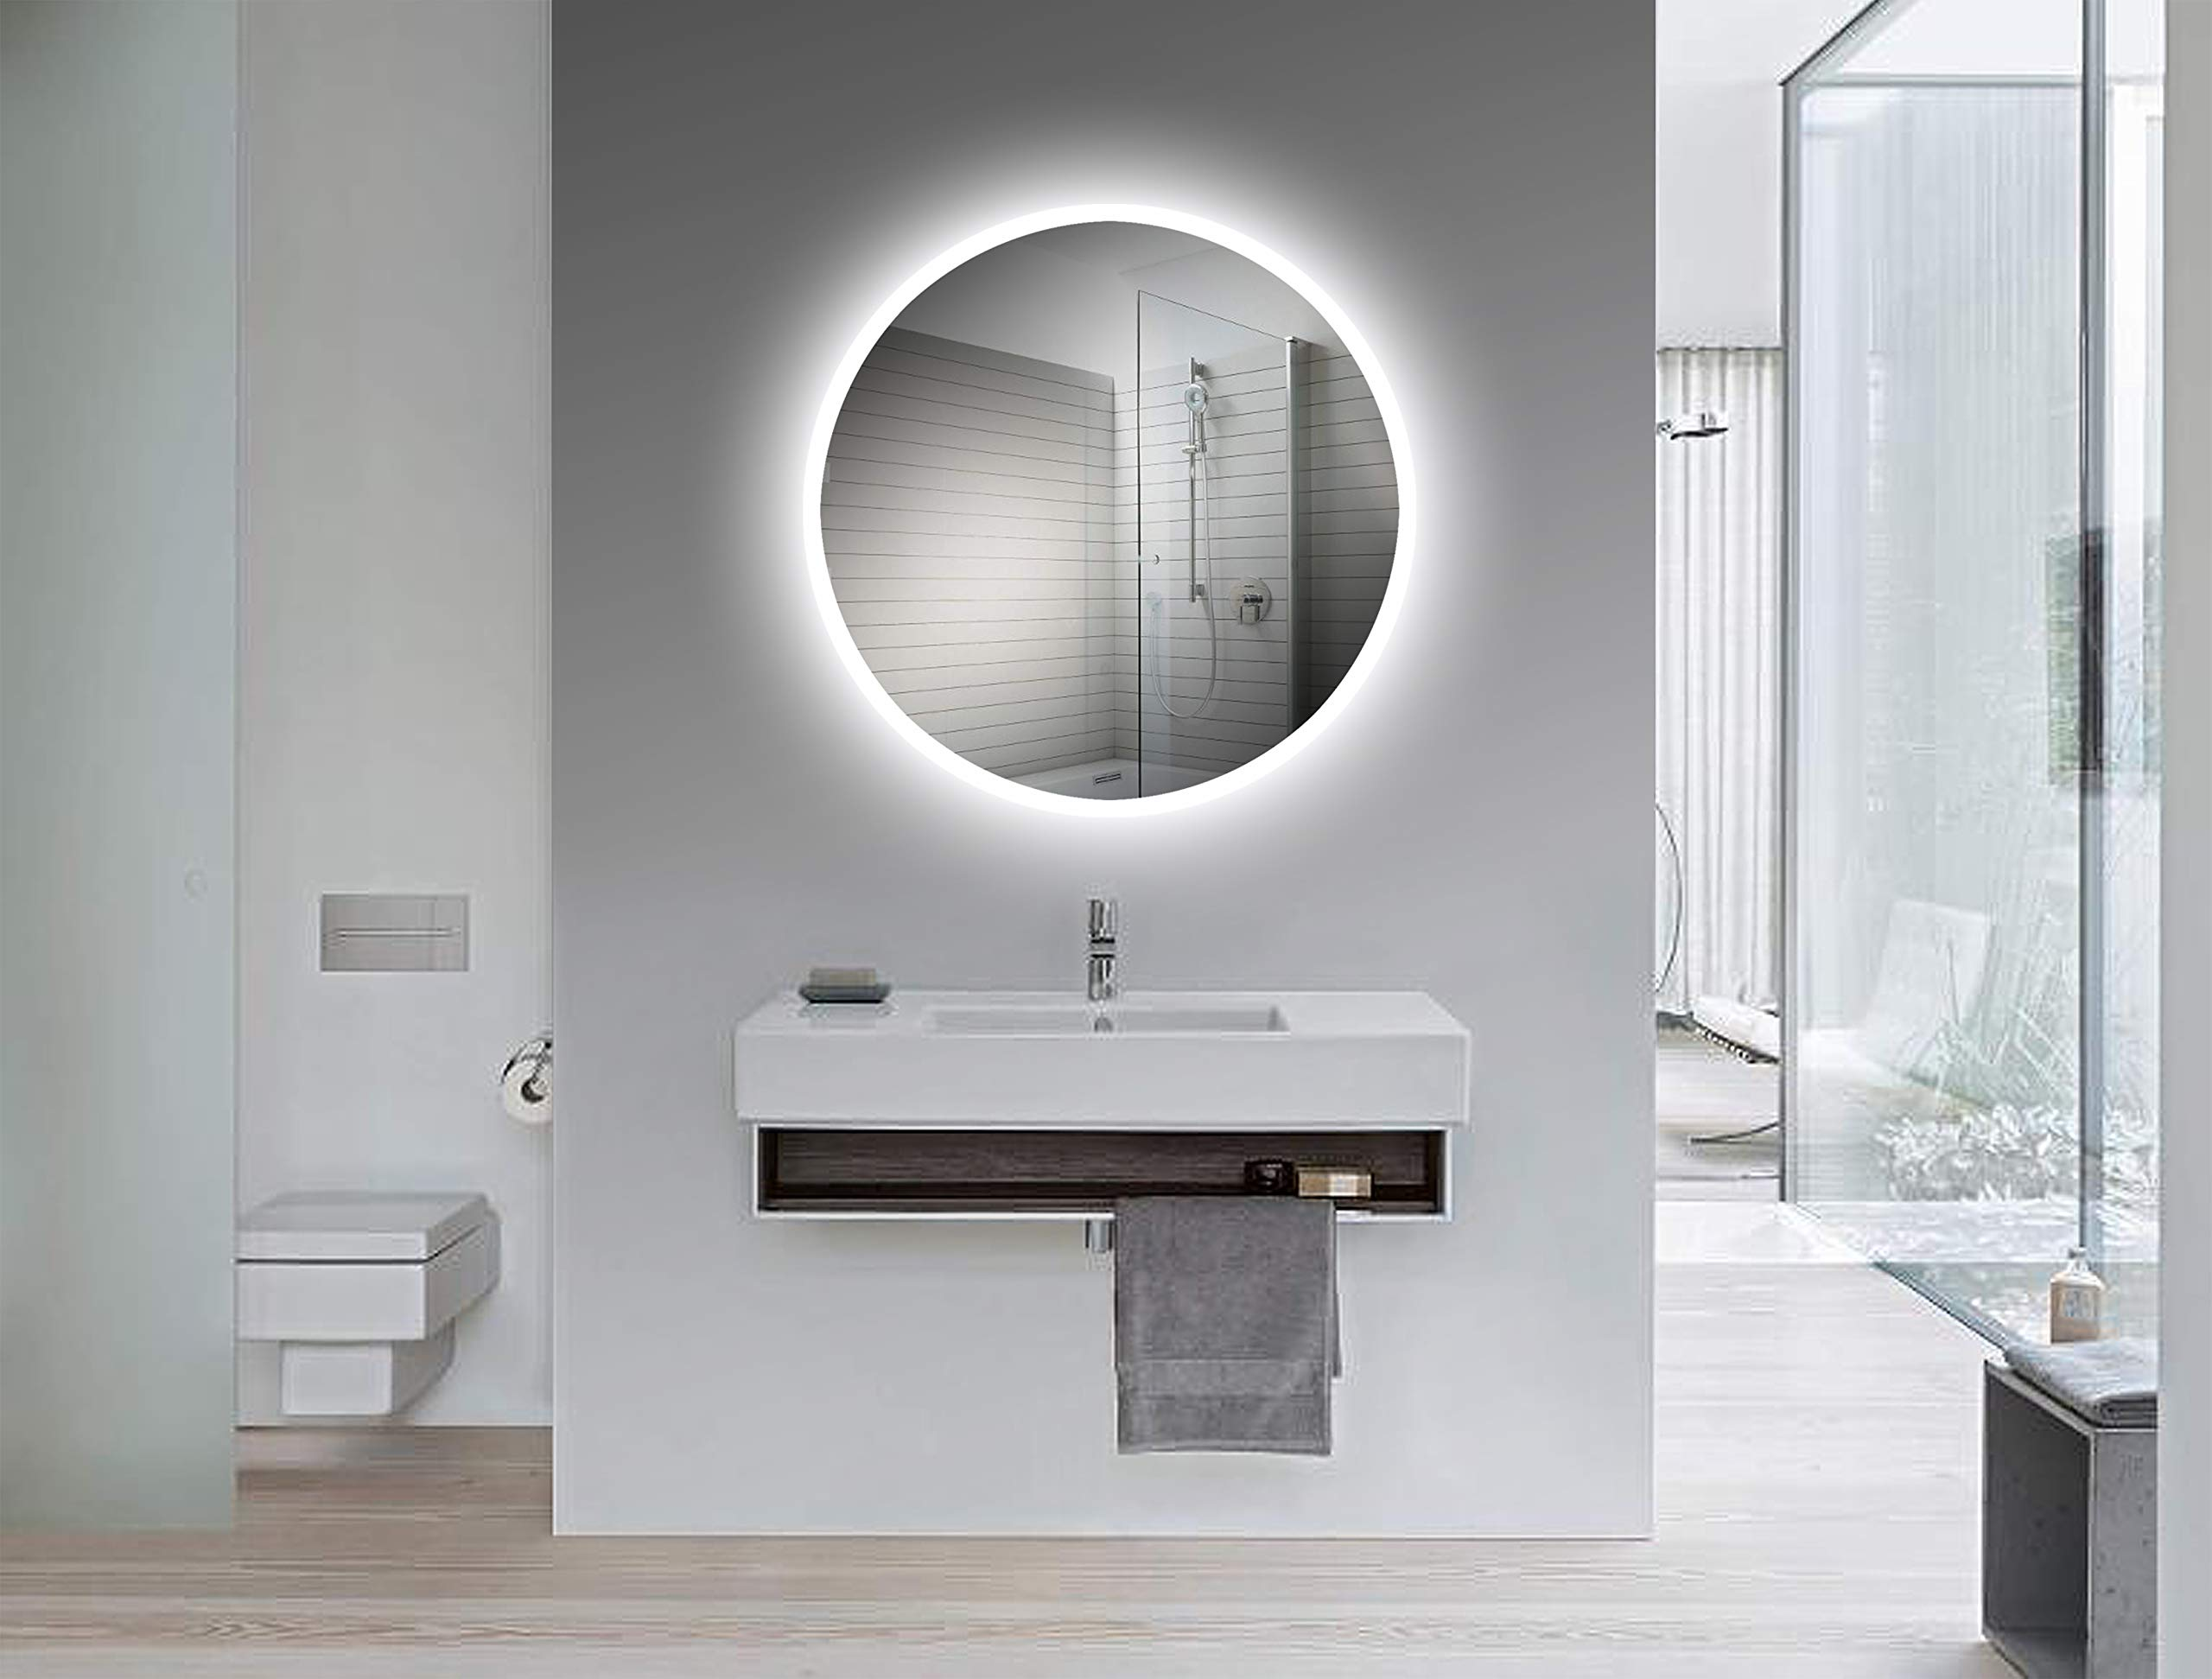 Yukon 32 x 32 Inch Round LED Wall Mounted Lighted Vanity Bathroom Silvered Mirror, CRI>90+ True Color,Dimmable, Dual colored LED Warm White/Cool White, UL Tested, Waterproof Vertical/Horizontal Mirror by Yukon